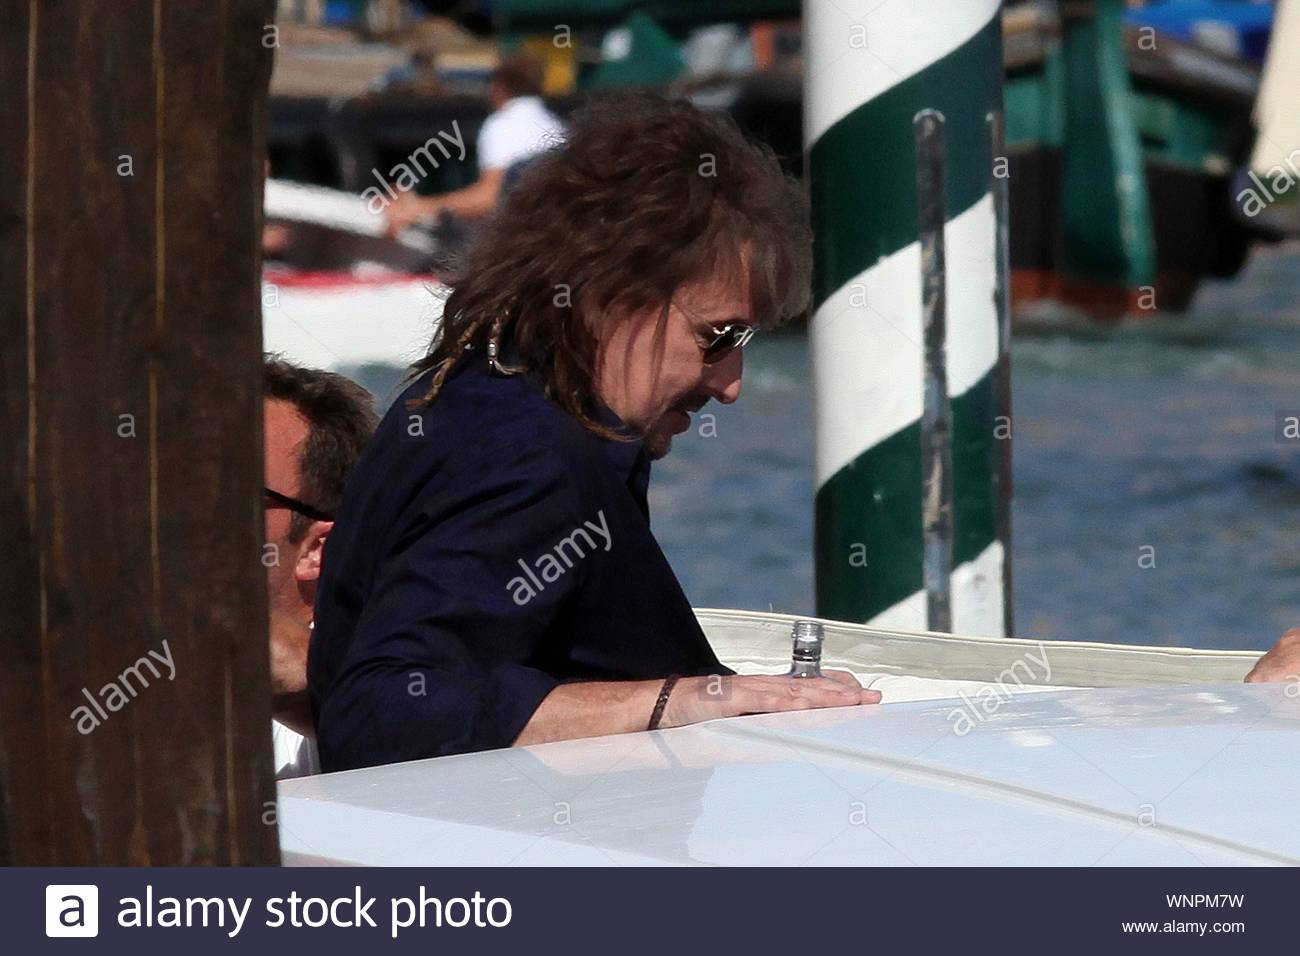 Shot On 5 31 14 Venice Italy Richie Sambora Was In A Celebratory Mood As He Arrived In Venice With Friends The Bon Jovi Guitarist Took Swigs From What Appeared To Be A